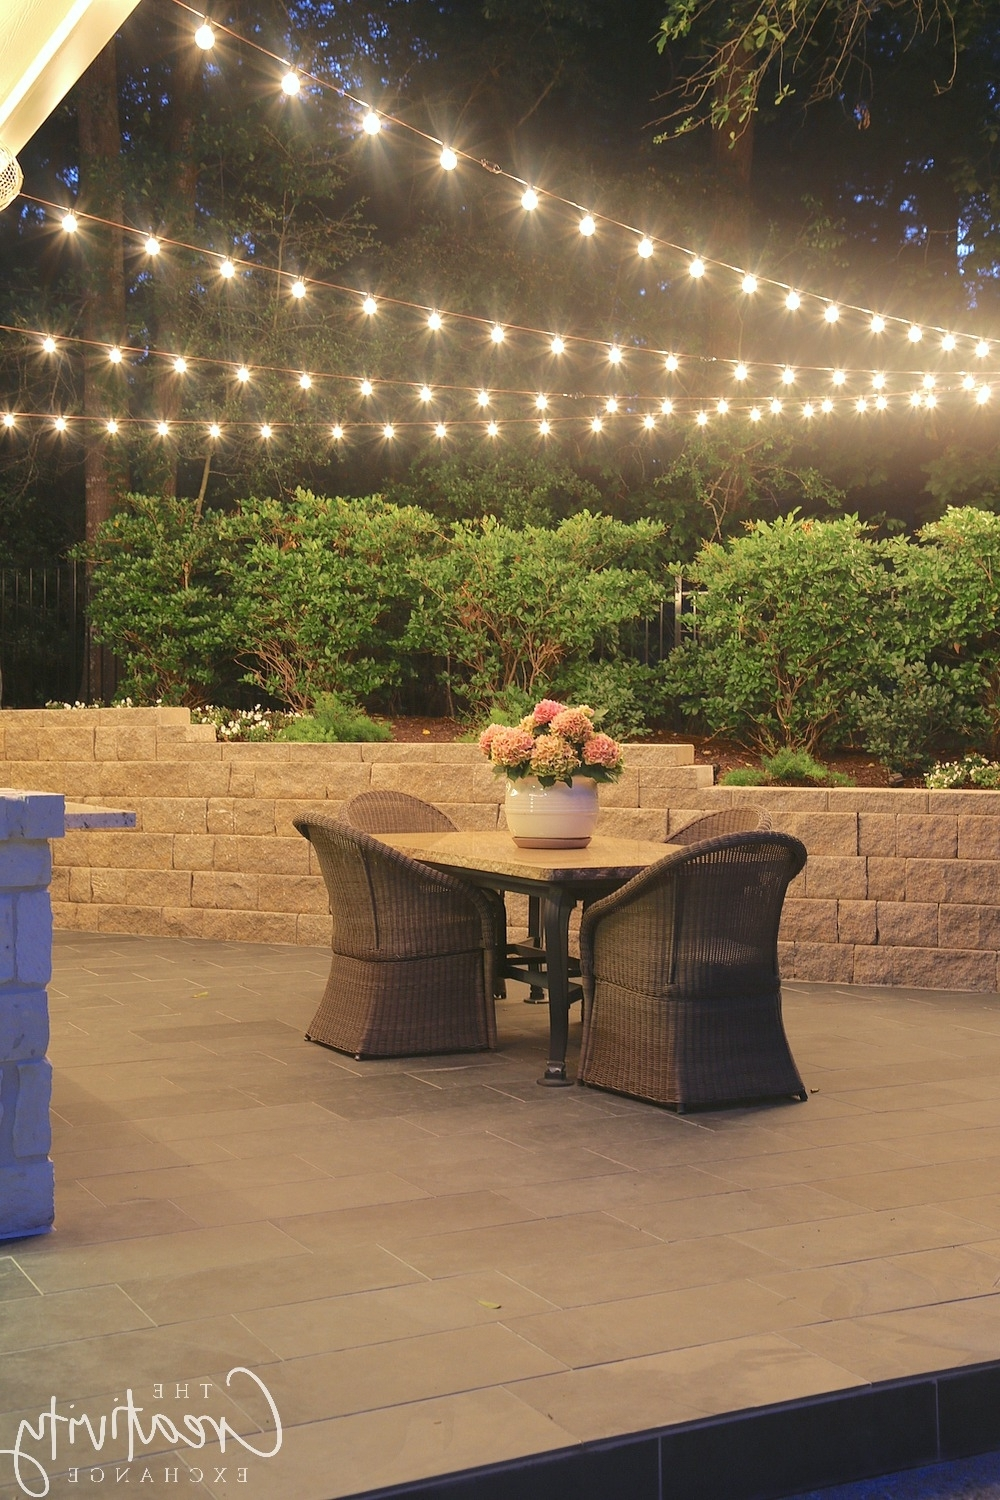 Most Popular Quick Tips For Hanging Outdoor String Lights Intended For Outdoor String Lanterns (View 20 of 20)